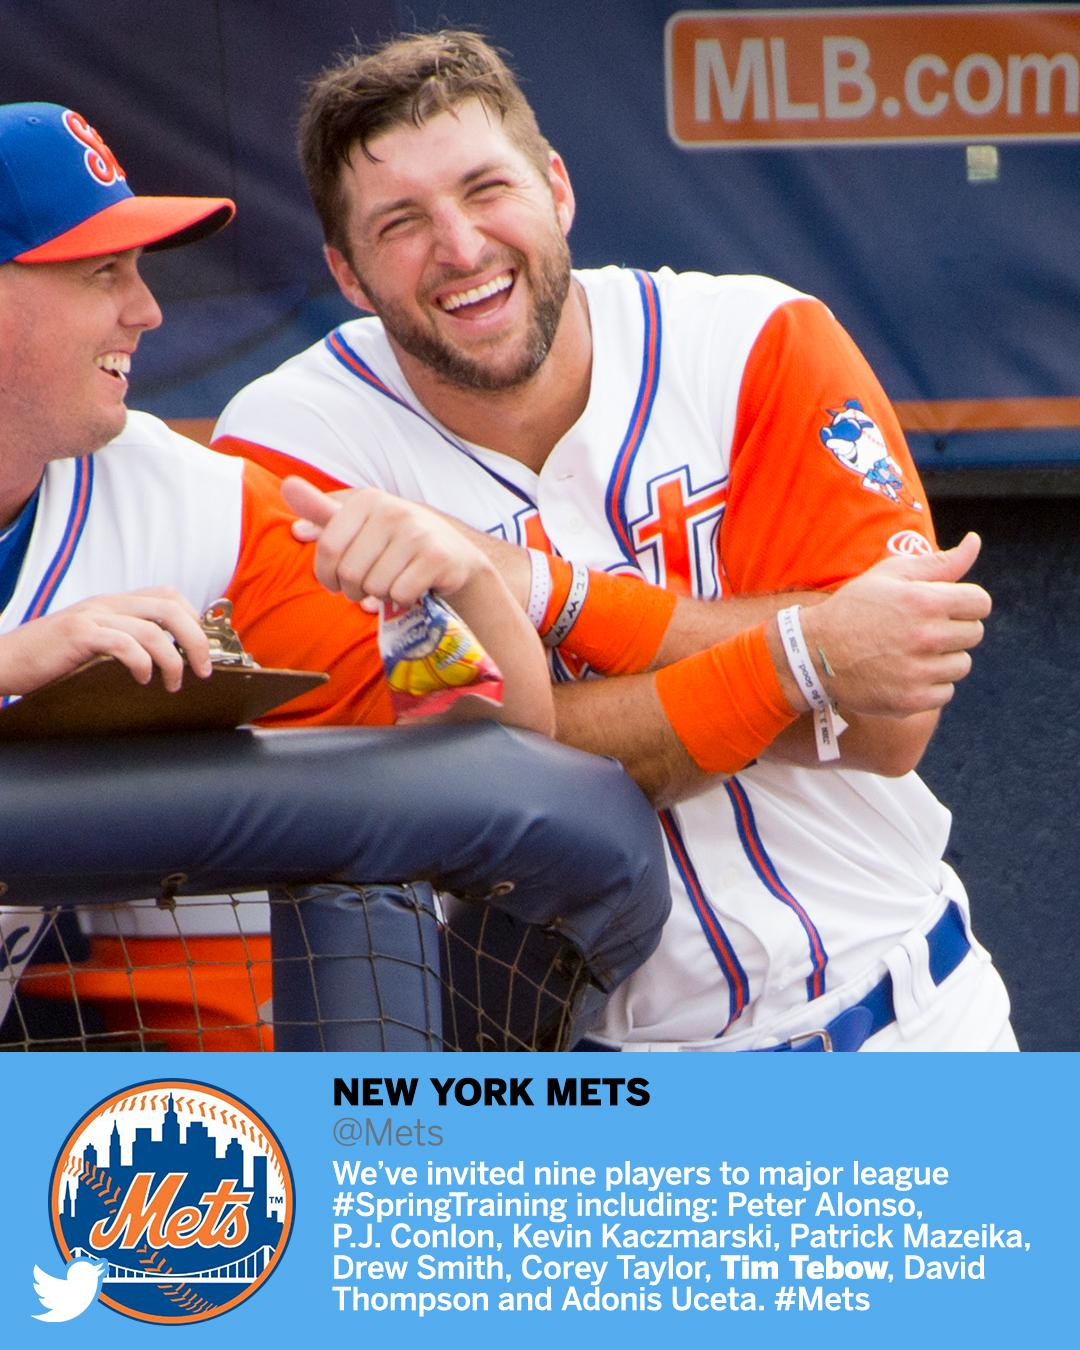 Tim Tebow's heading back to spring training. https://t.co/PEgZ5qt8Lv